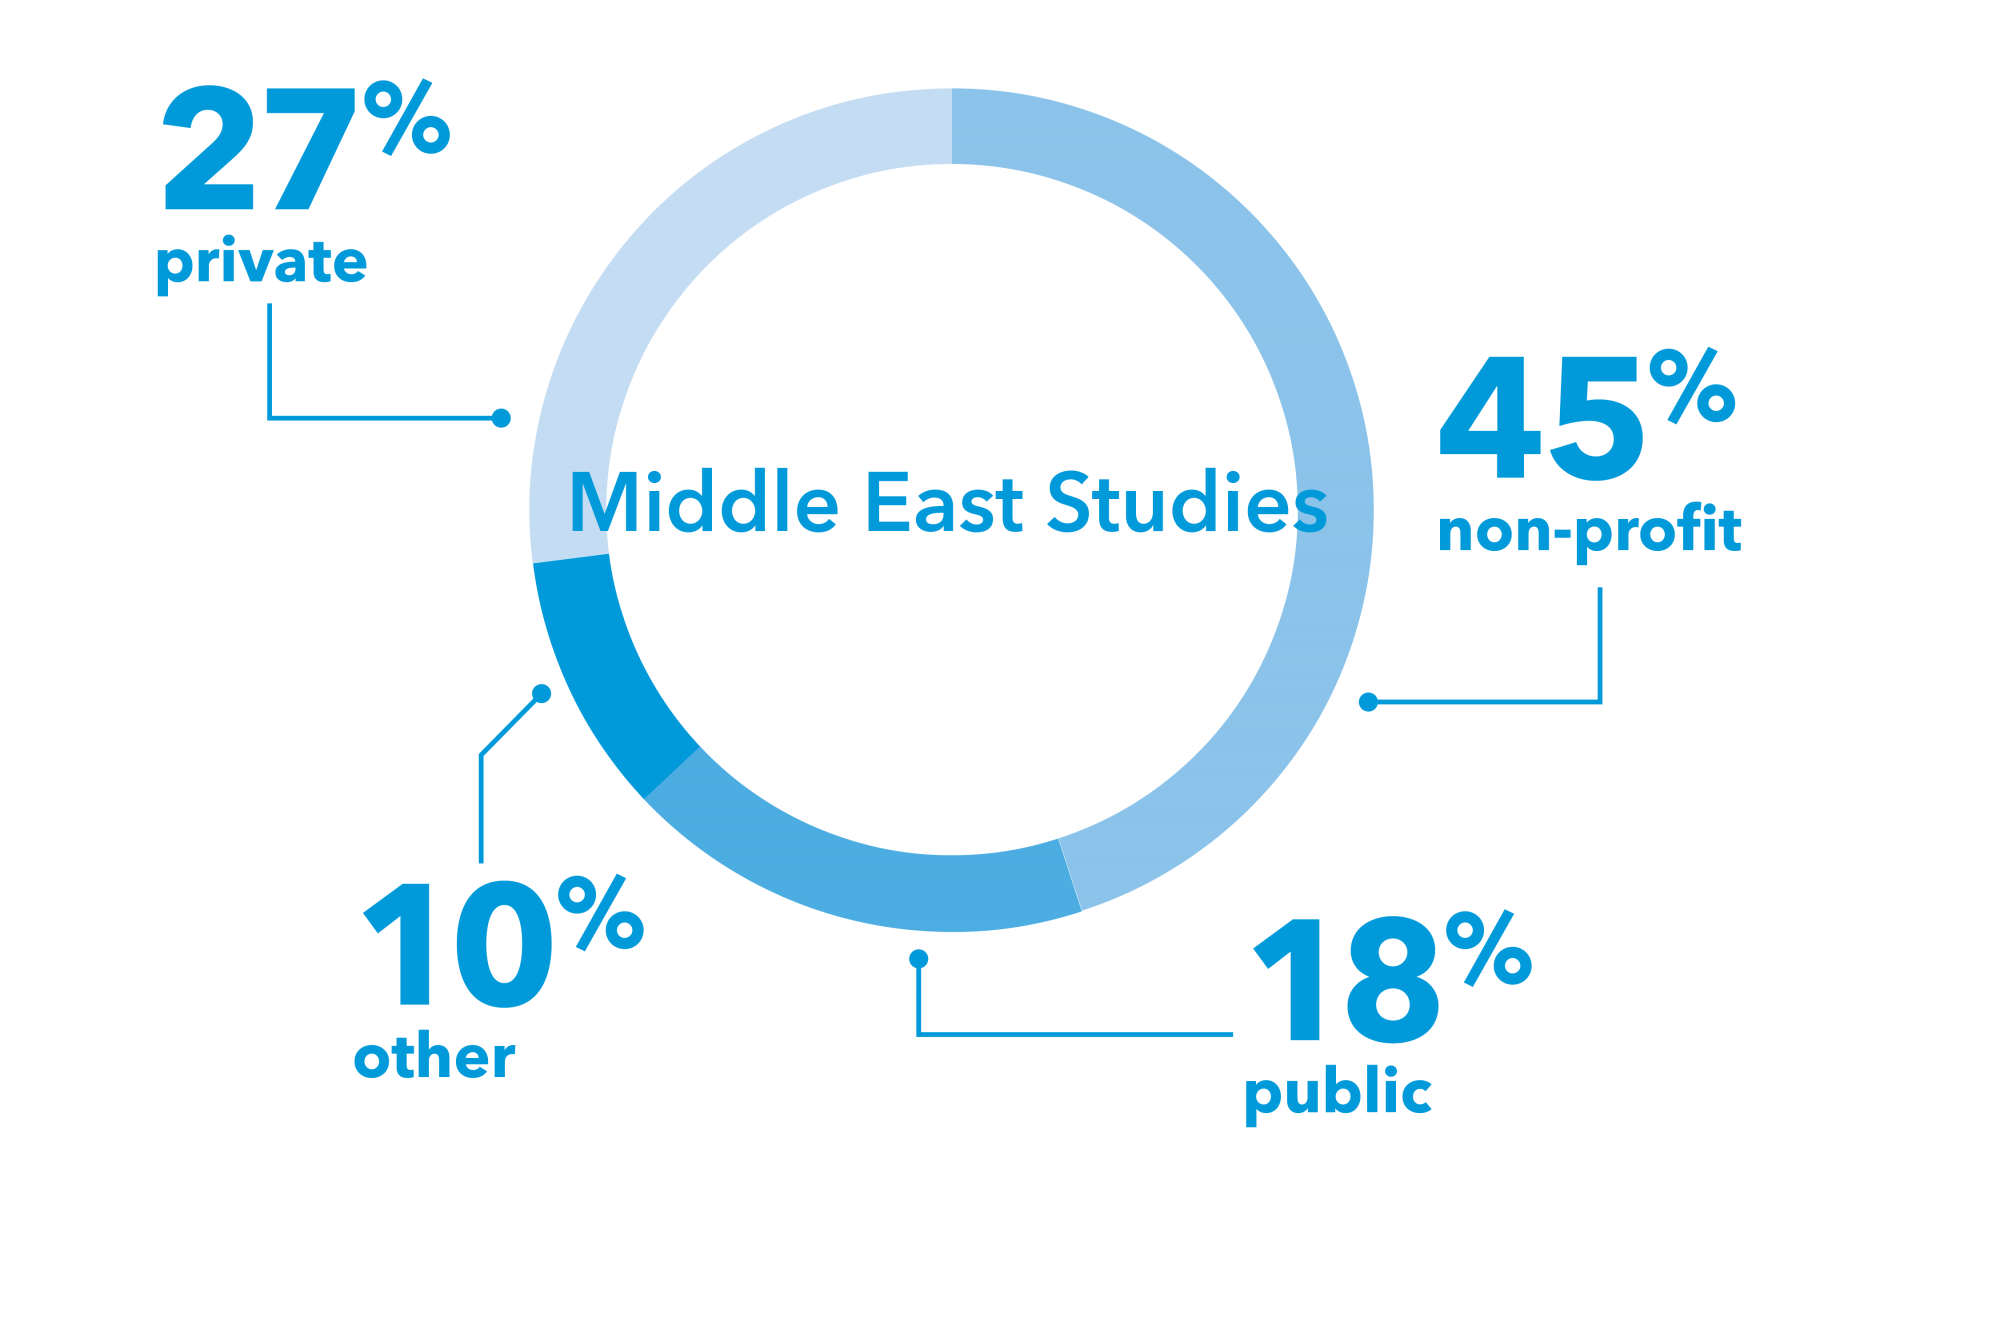 graphic: pie chart, 27% private, 18% public, 45% non-profit, 10% other Middle East Studies